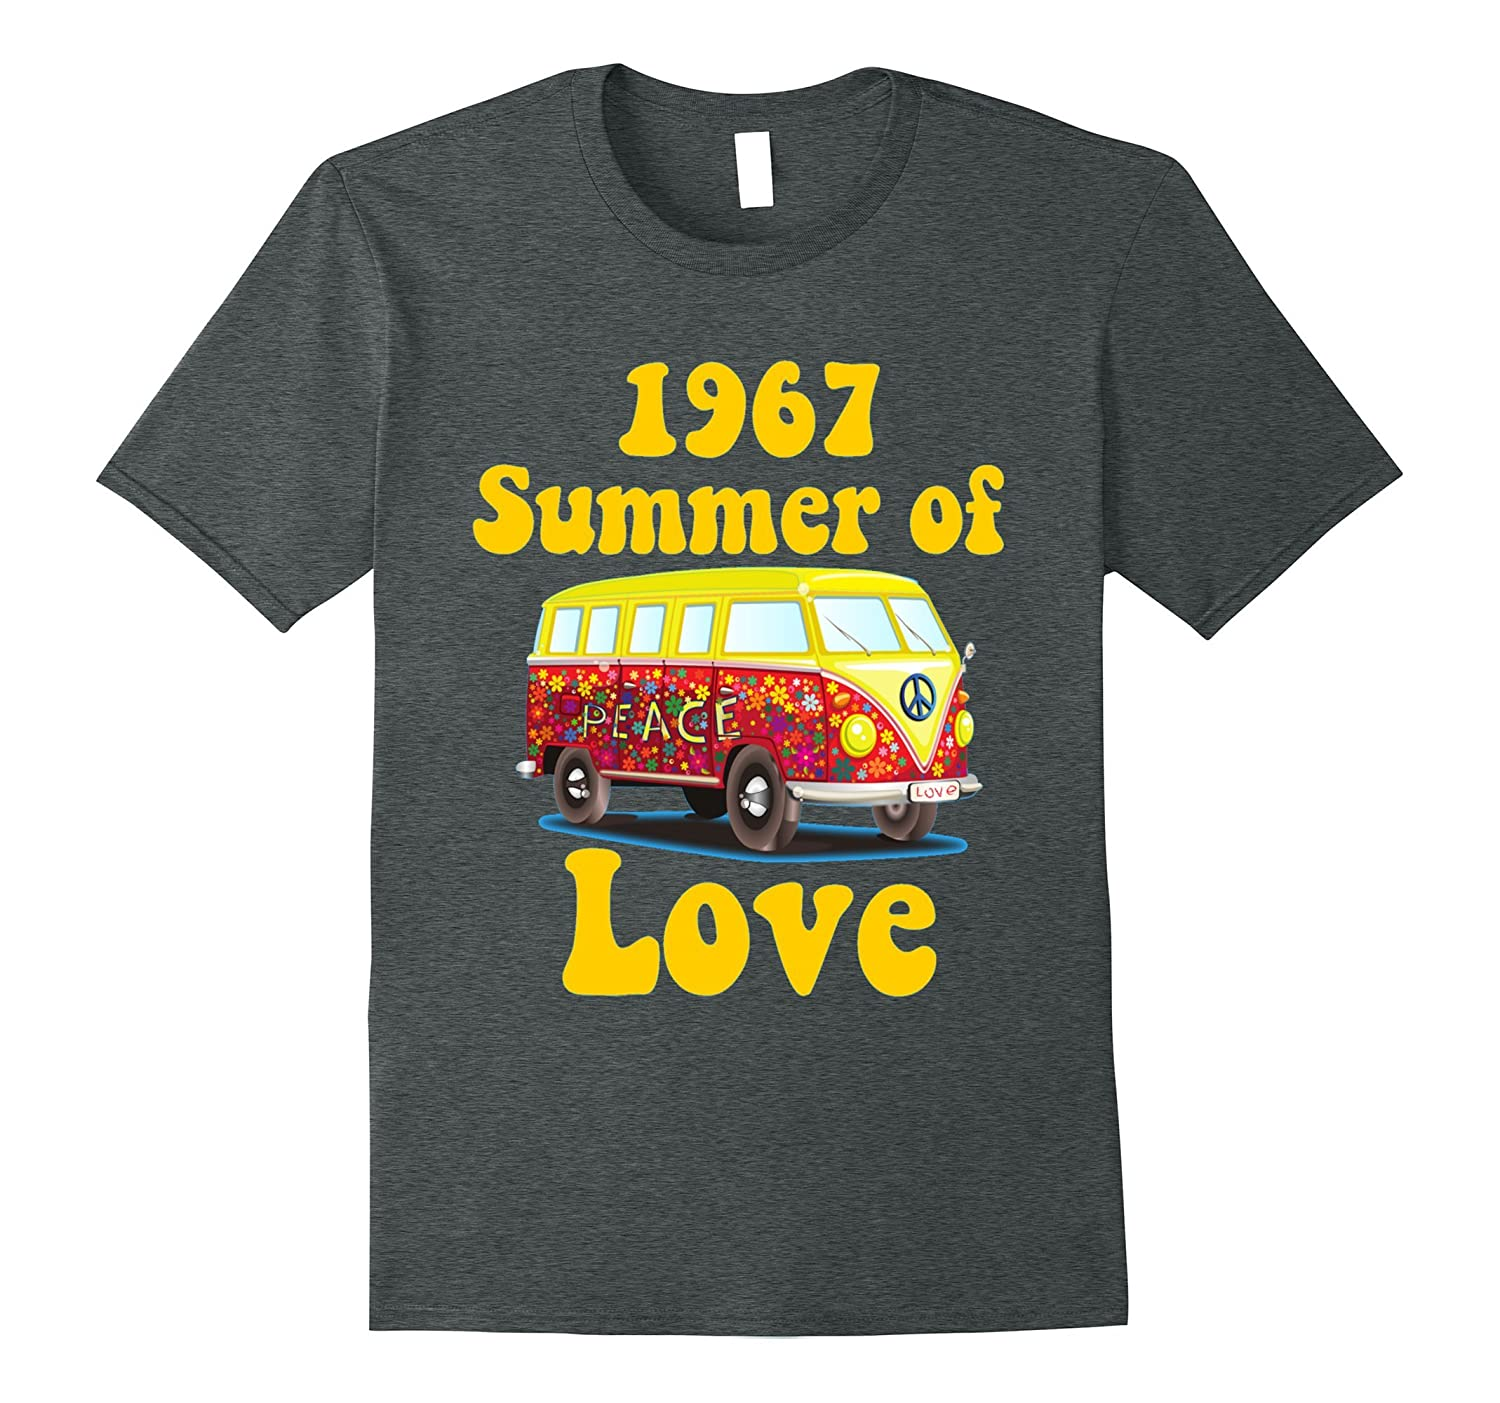 1967 Summer of Love Retro Tees Vintage Sixties Hippie Shirt-RT